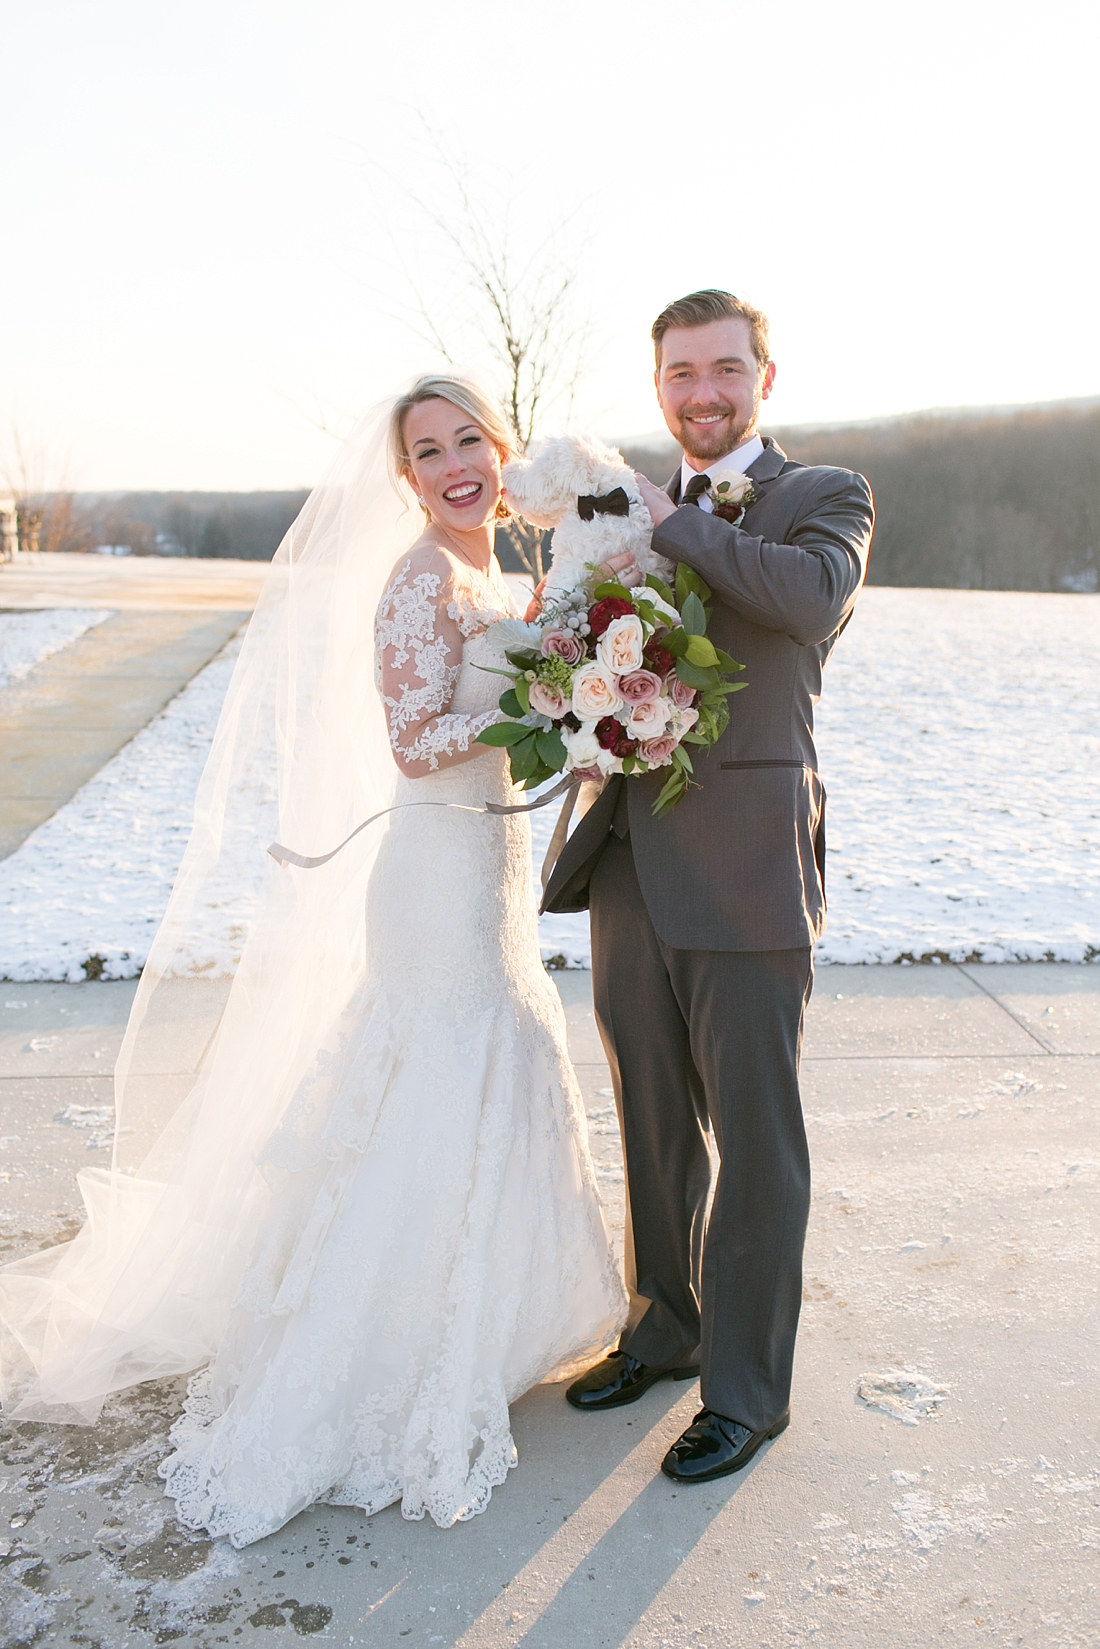 Marryland Weddings Romantic Winter Garden Springfield Manor Thurmont MD Brittany Thomas Photography_0788.jpg